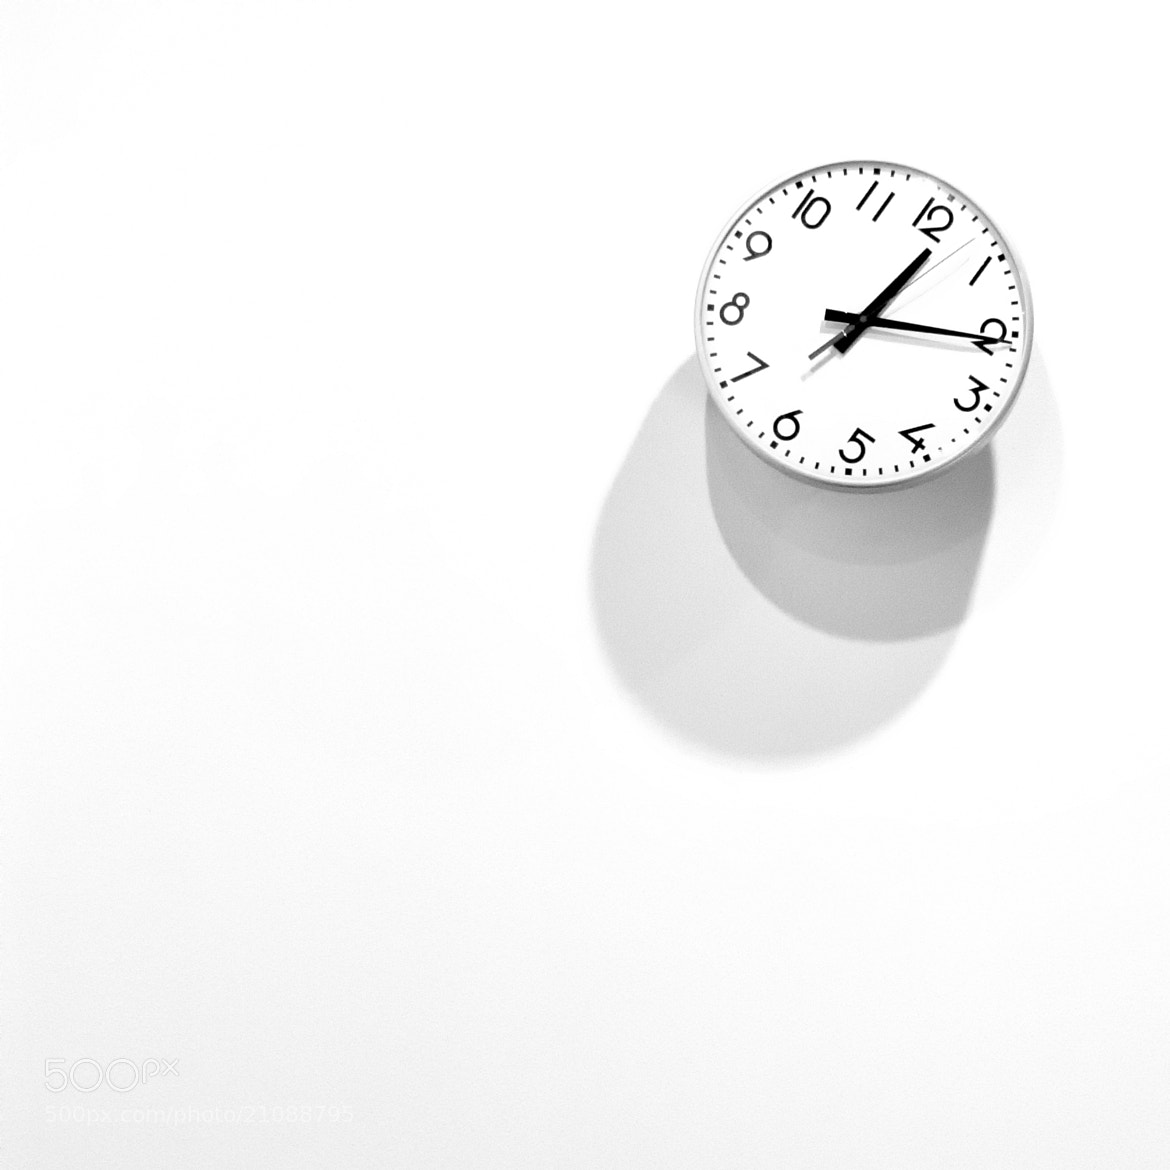 Photograph Reloj inclinado 21.12.2012 by Fermín Noain on 500px